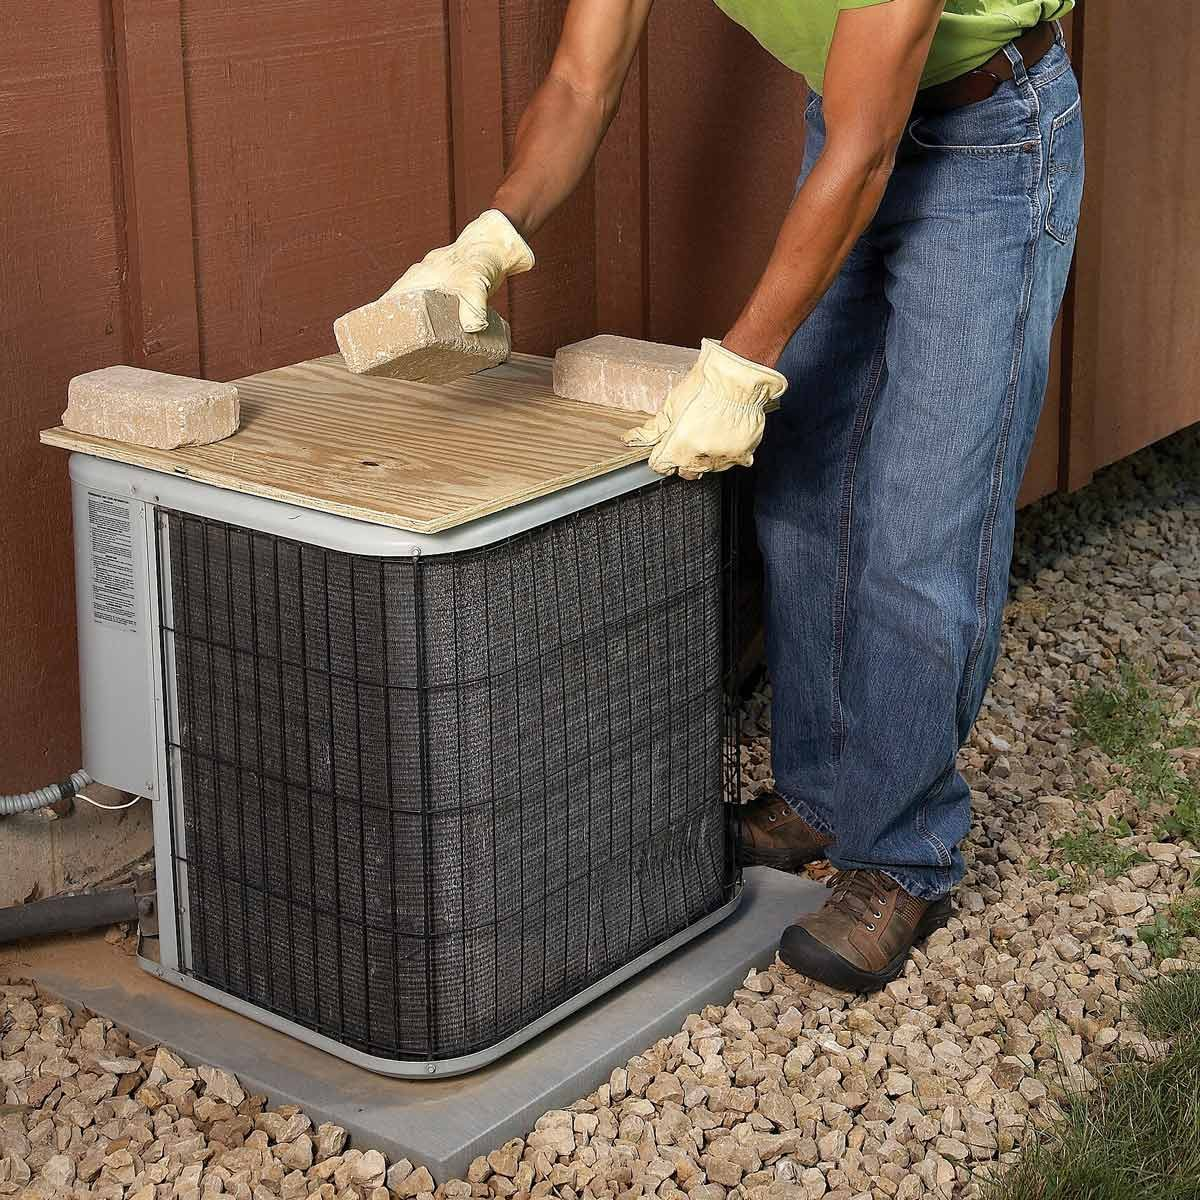 winterize ac unit with plywood protector